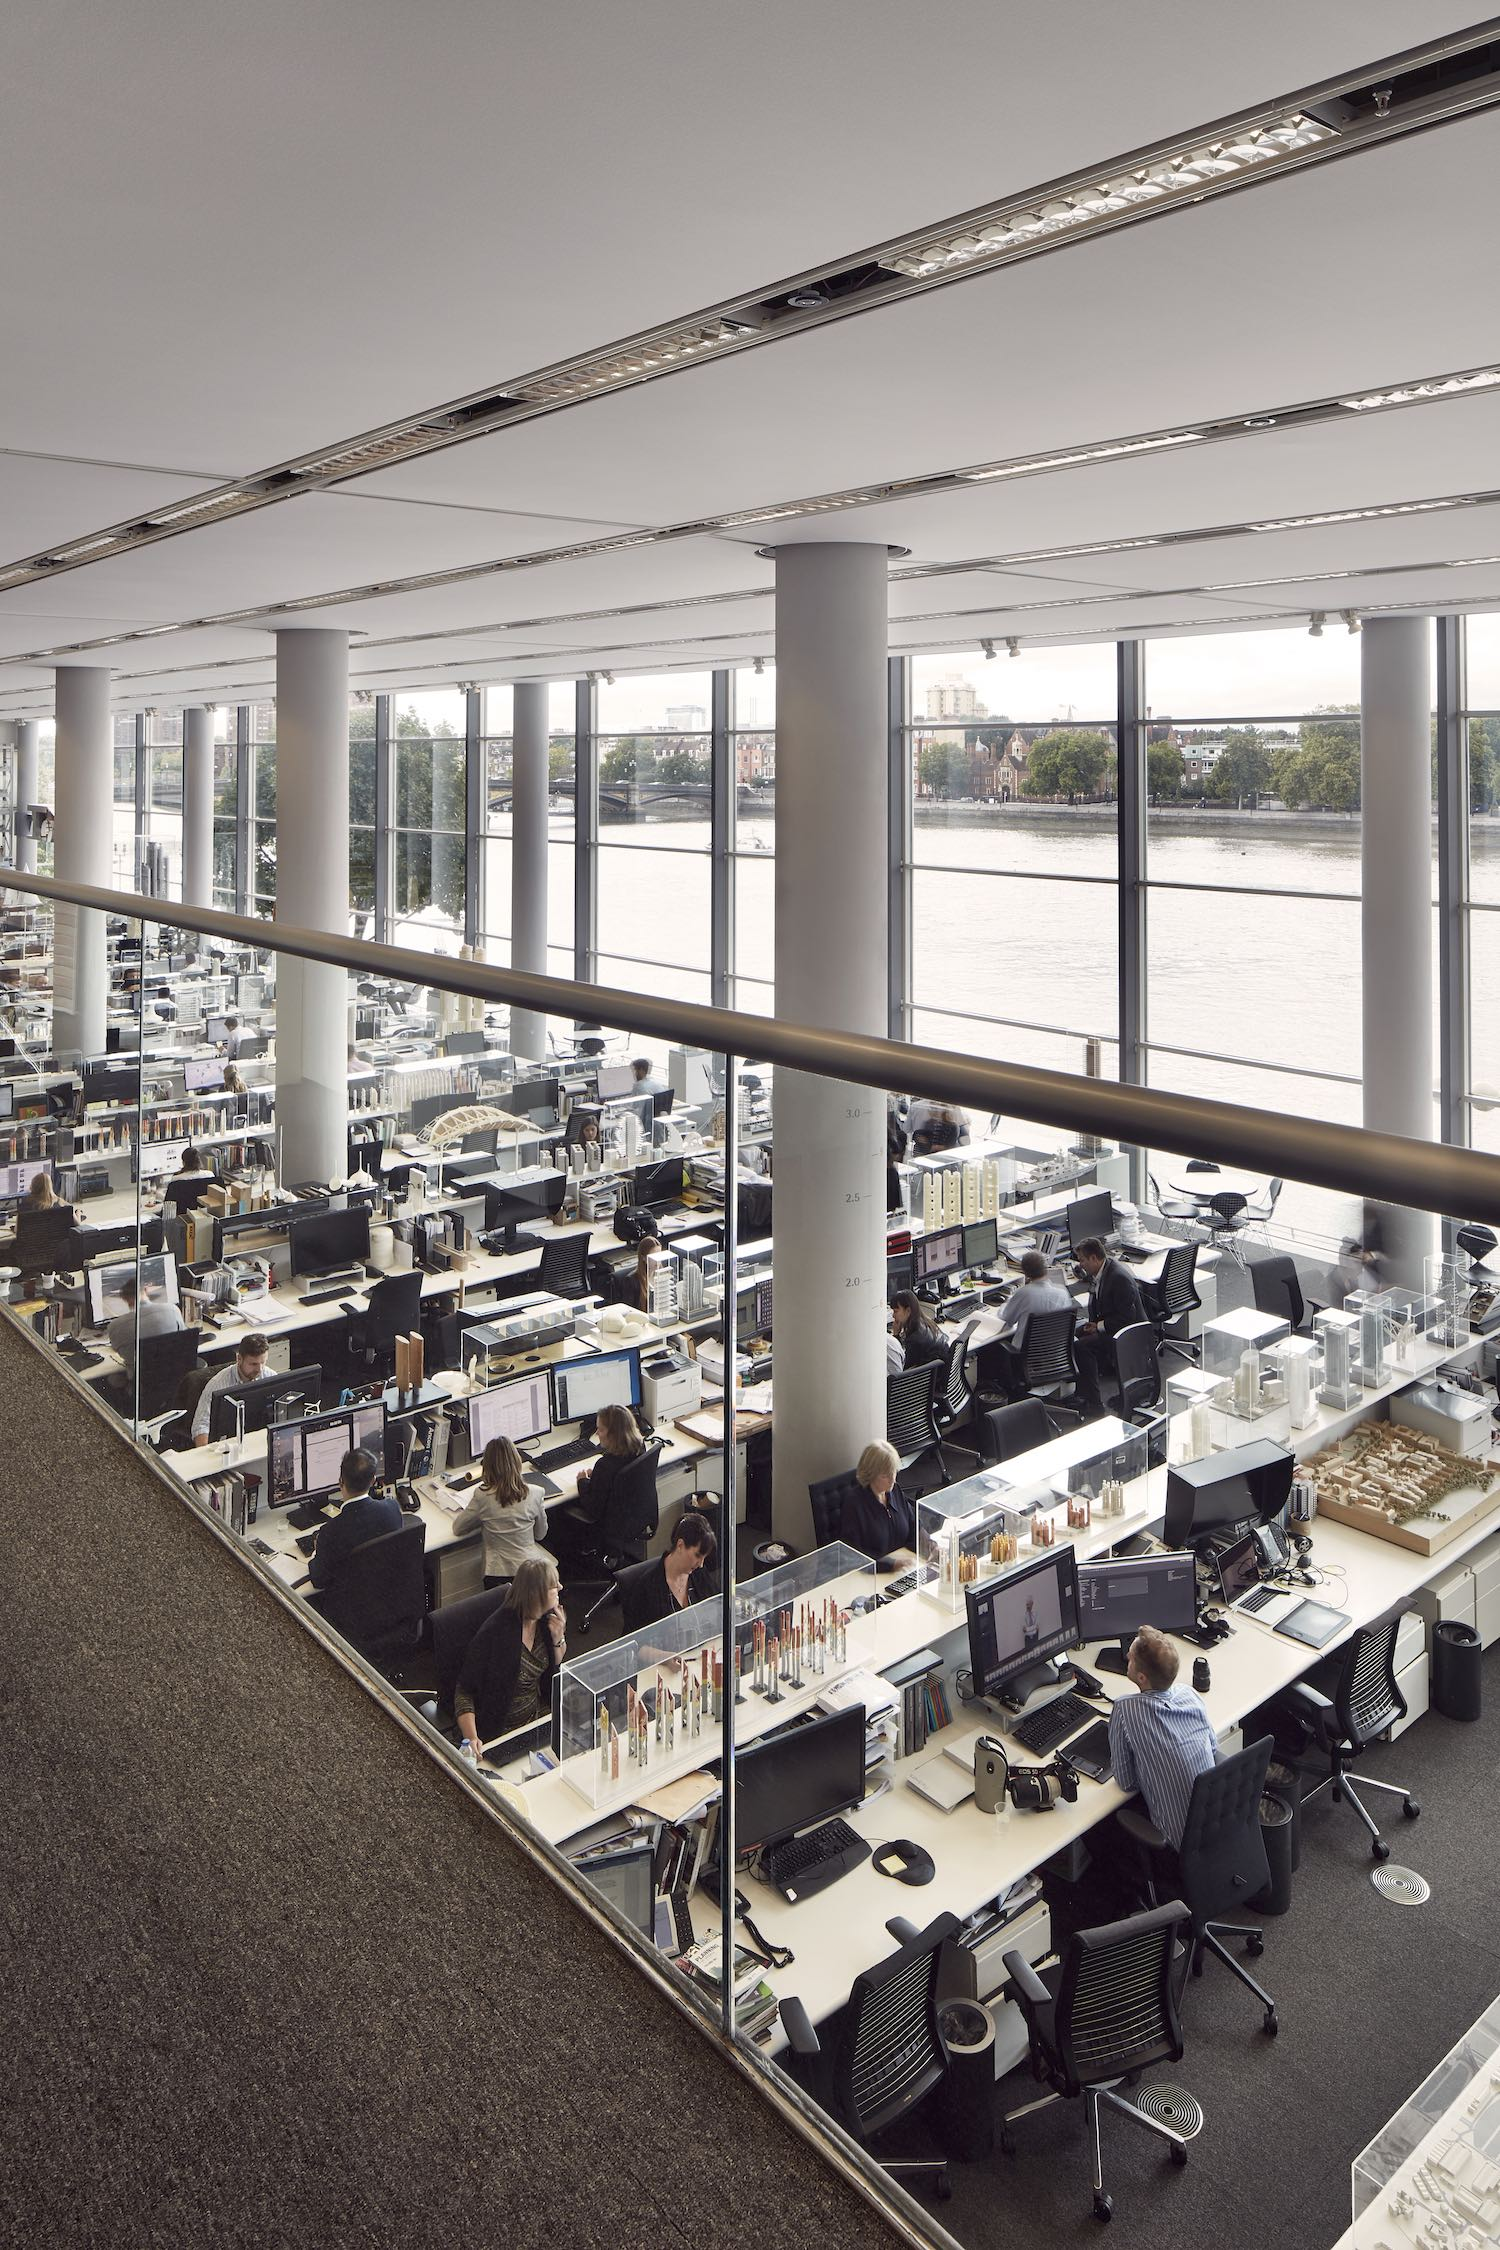 Norman foster office Google Headquarters The Foster Partners Office In London Surface Mag Seeing The Future Why Norman Foster Is The Perfect Architect For